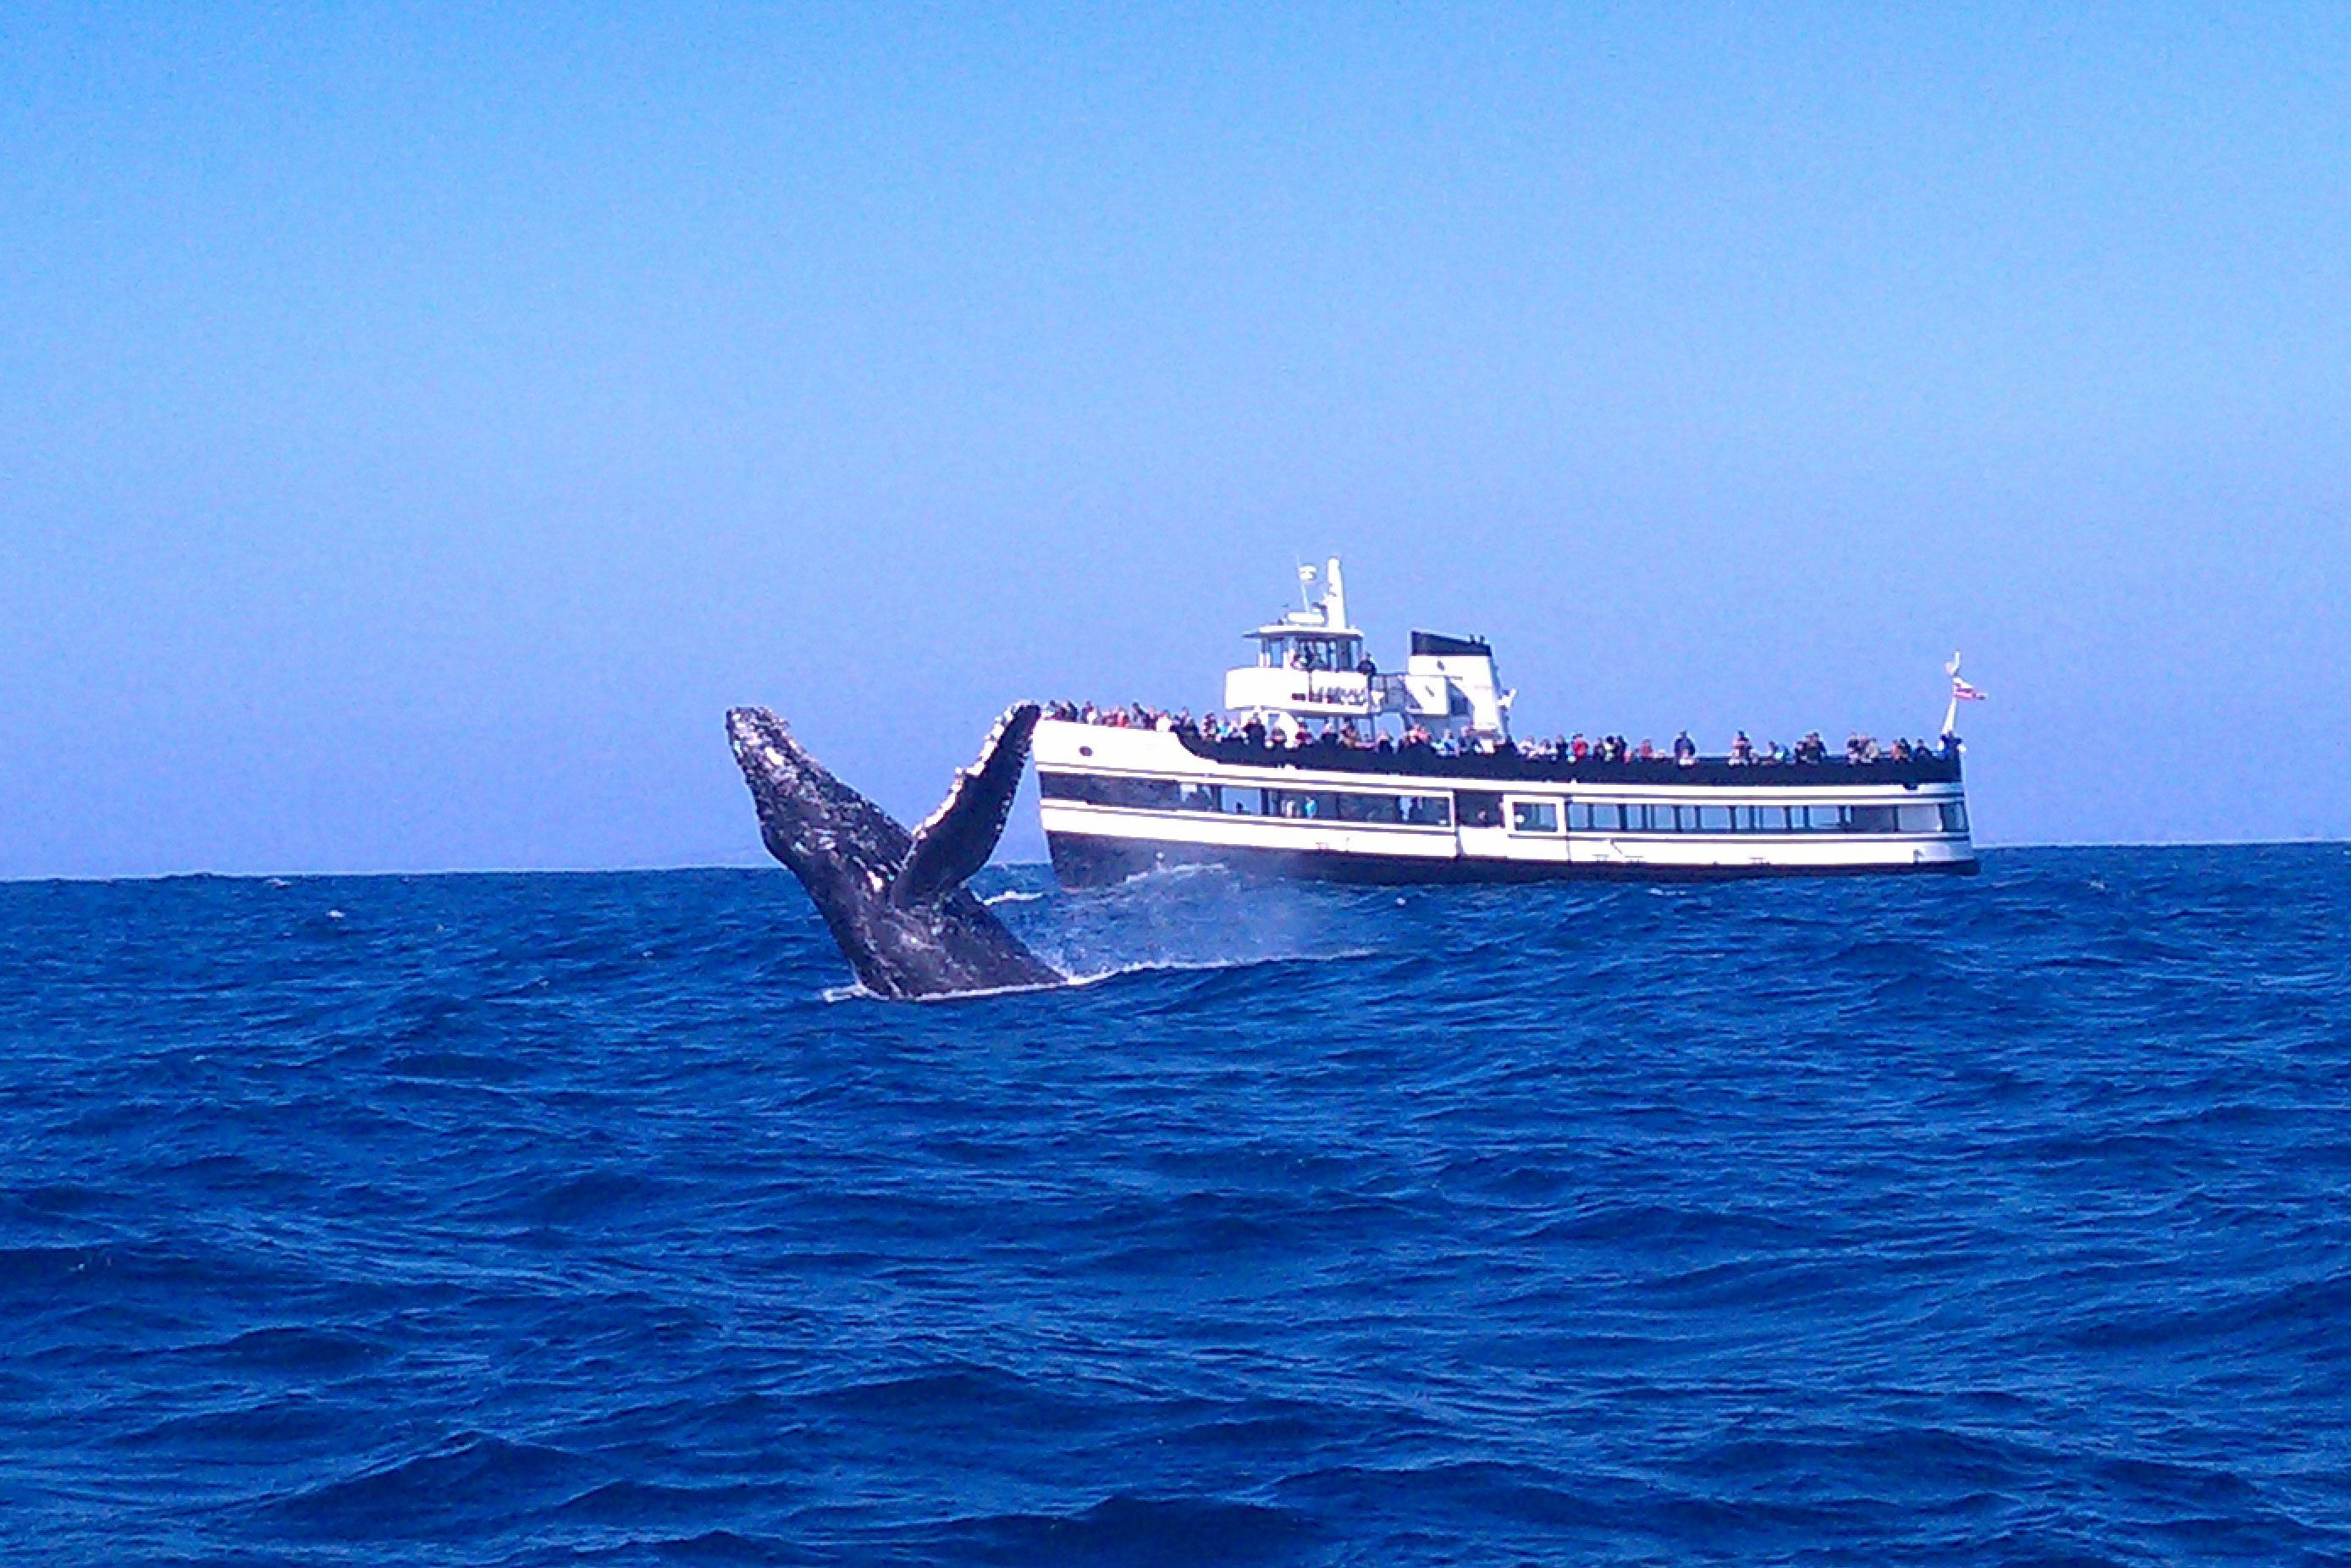 During The Winter Months Numerous Whale Watching Services Offer